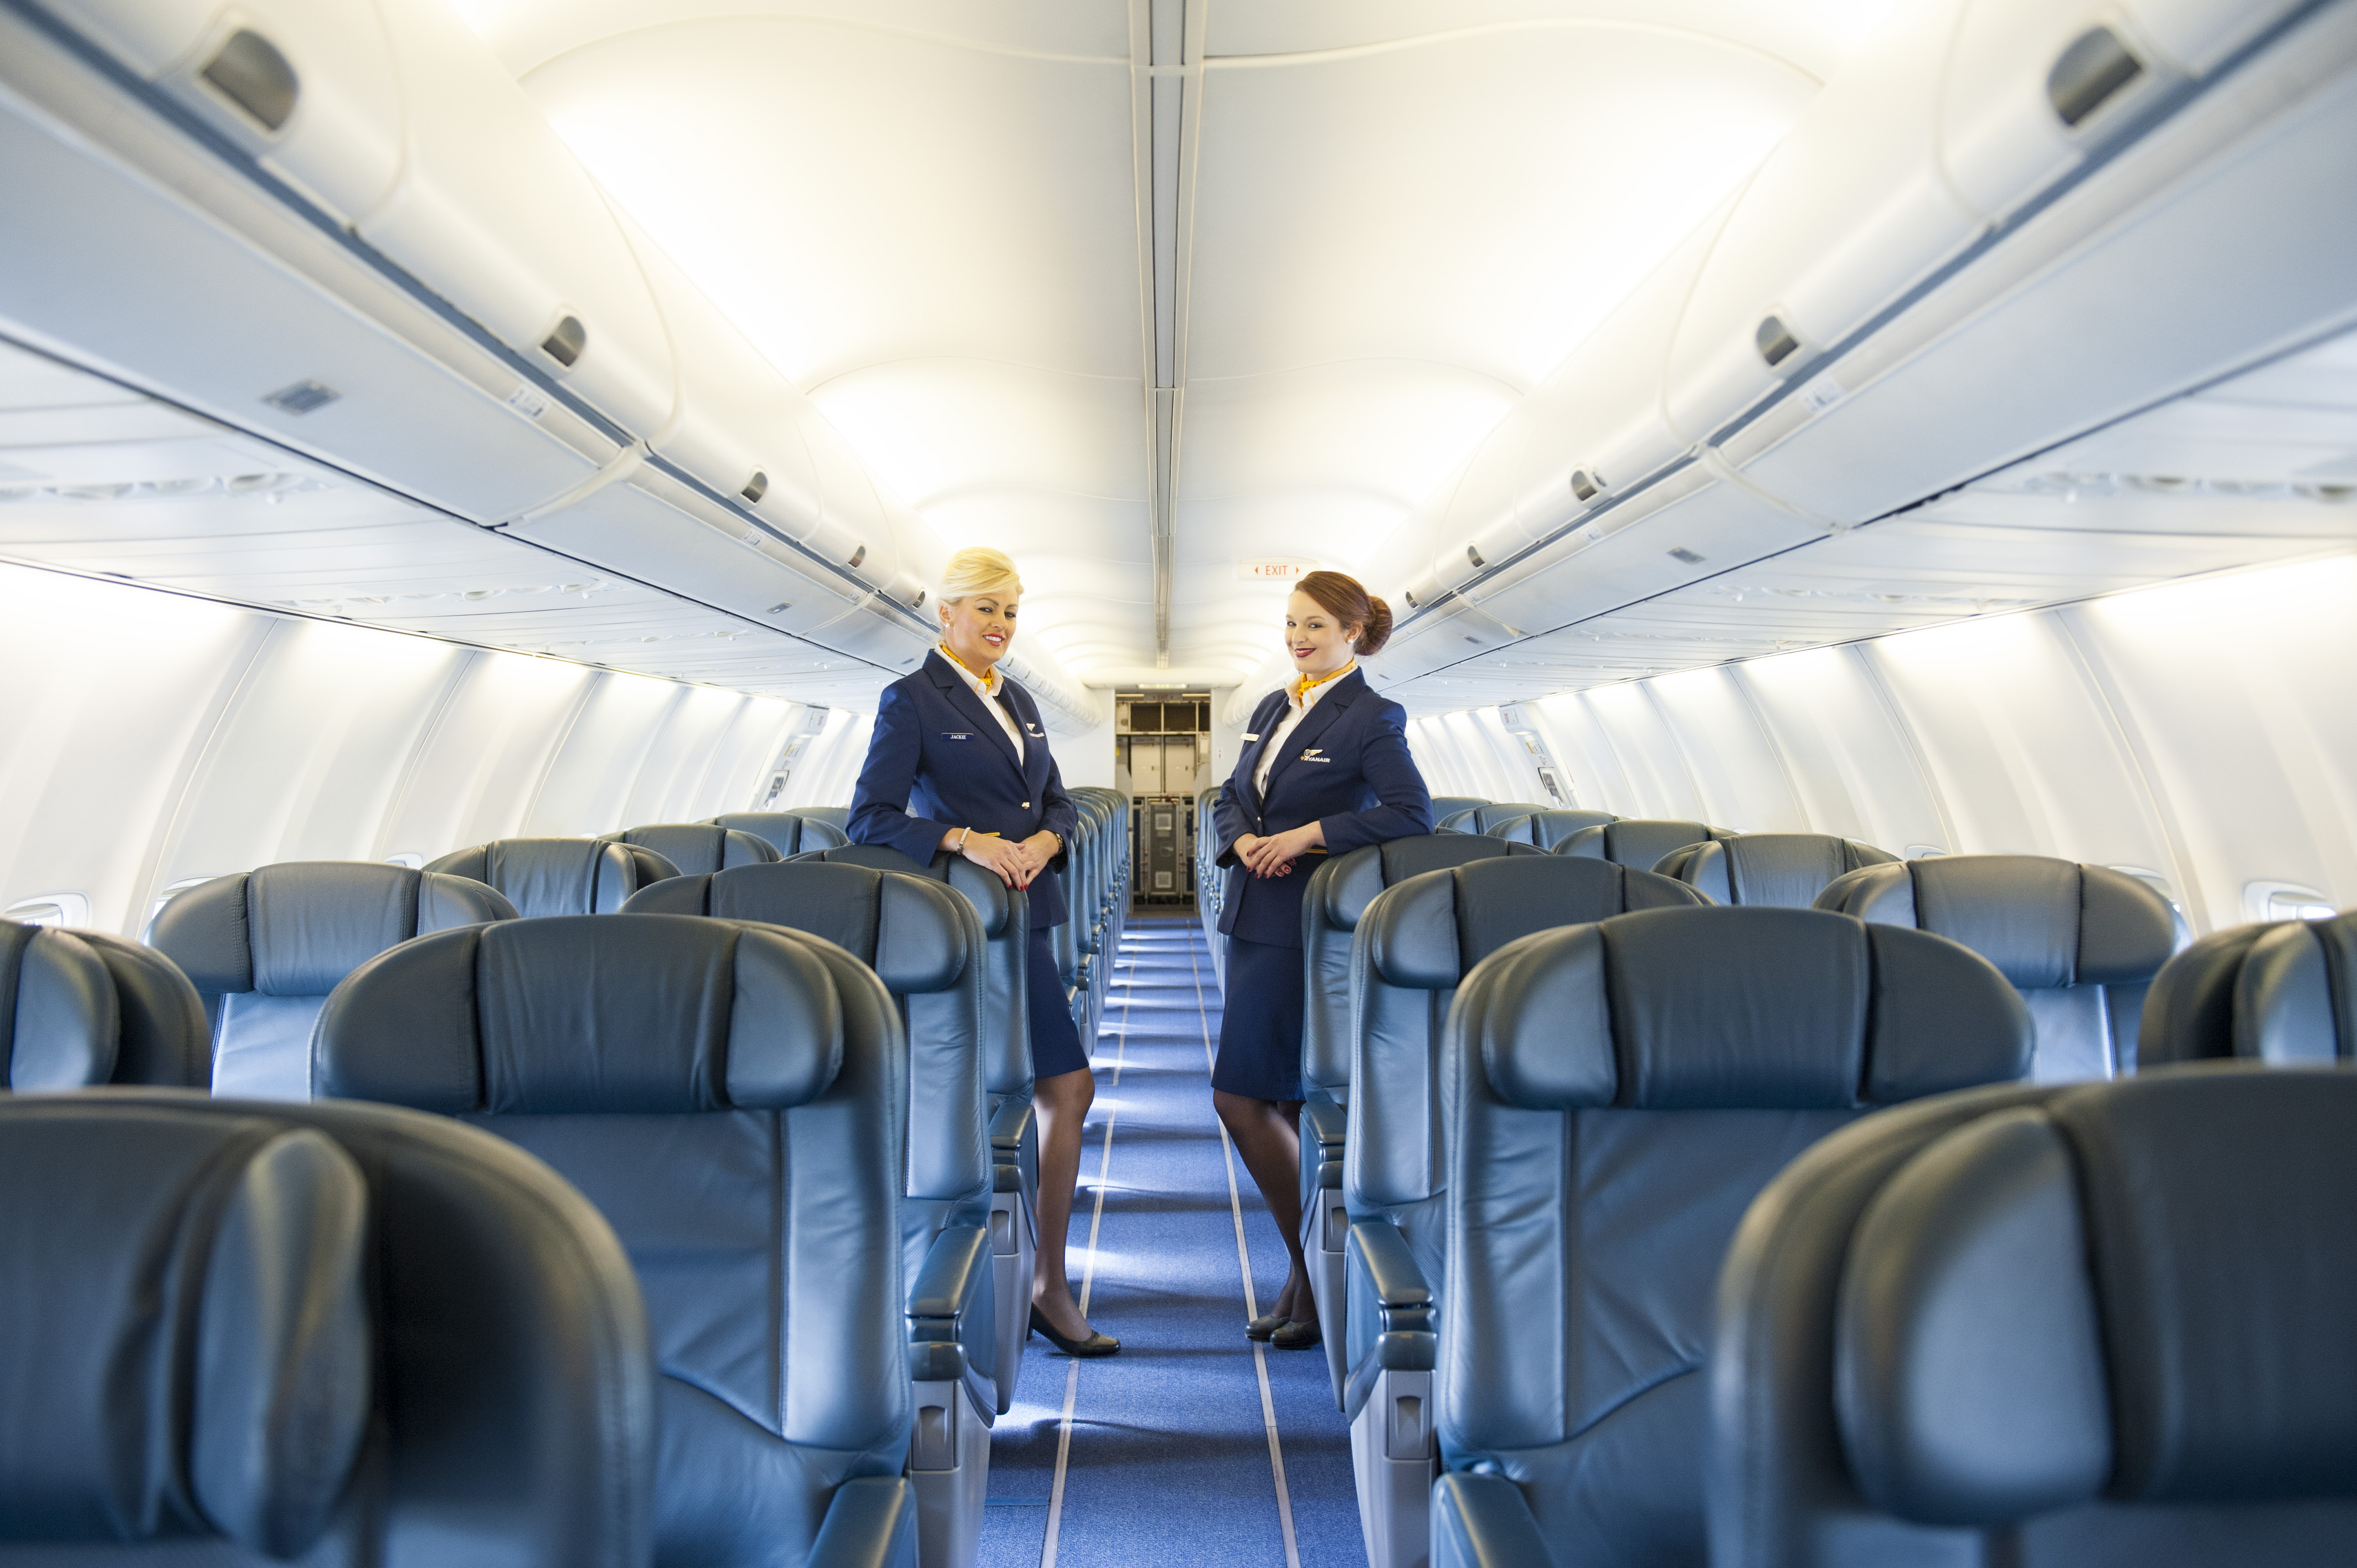 Ryanair glides into private jet space to cater to corporate high fliers